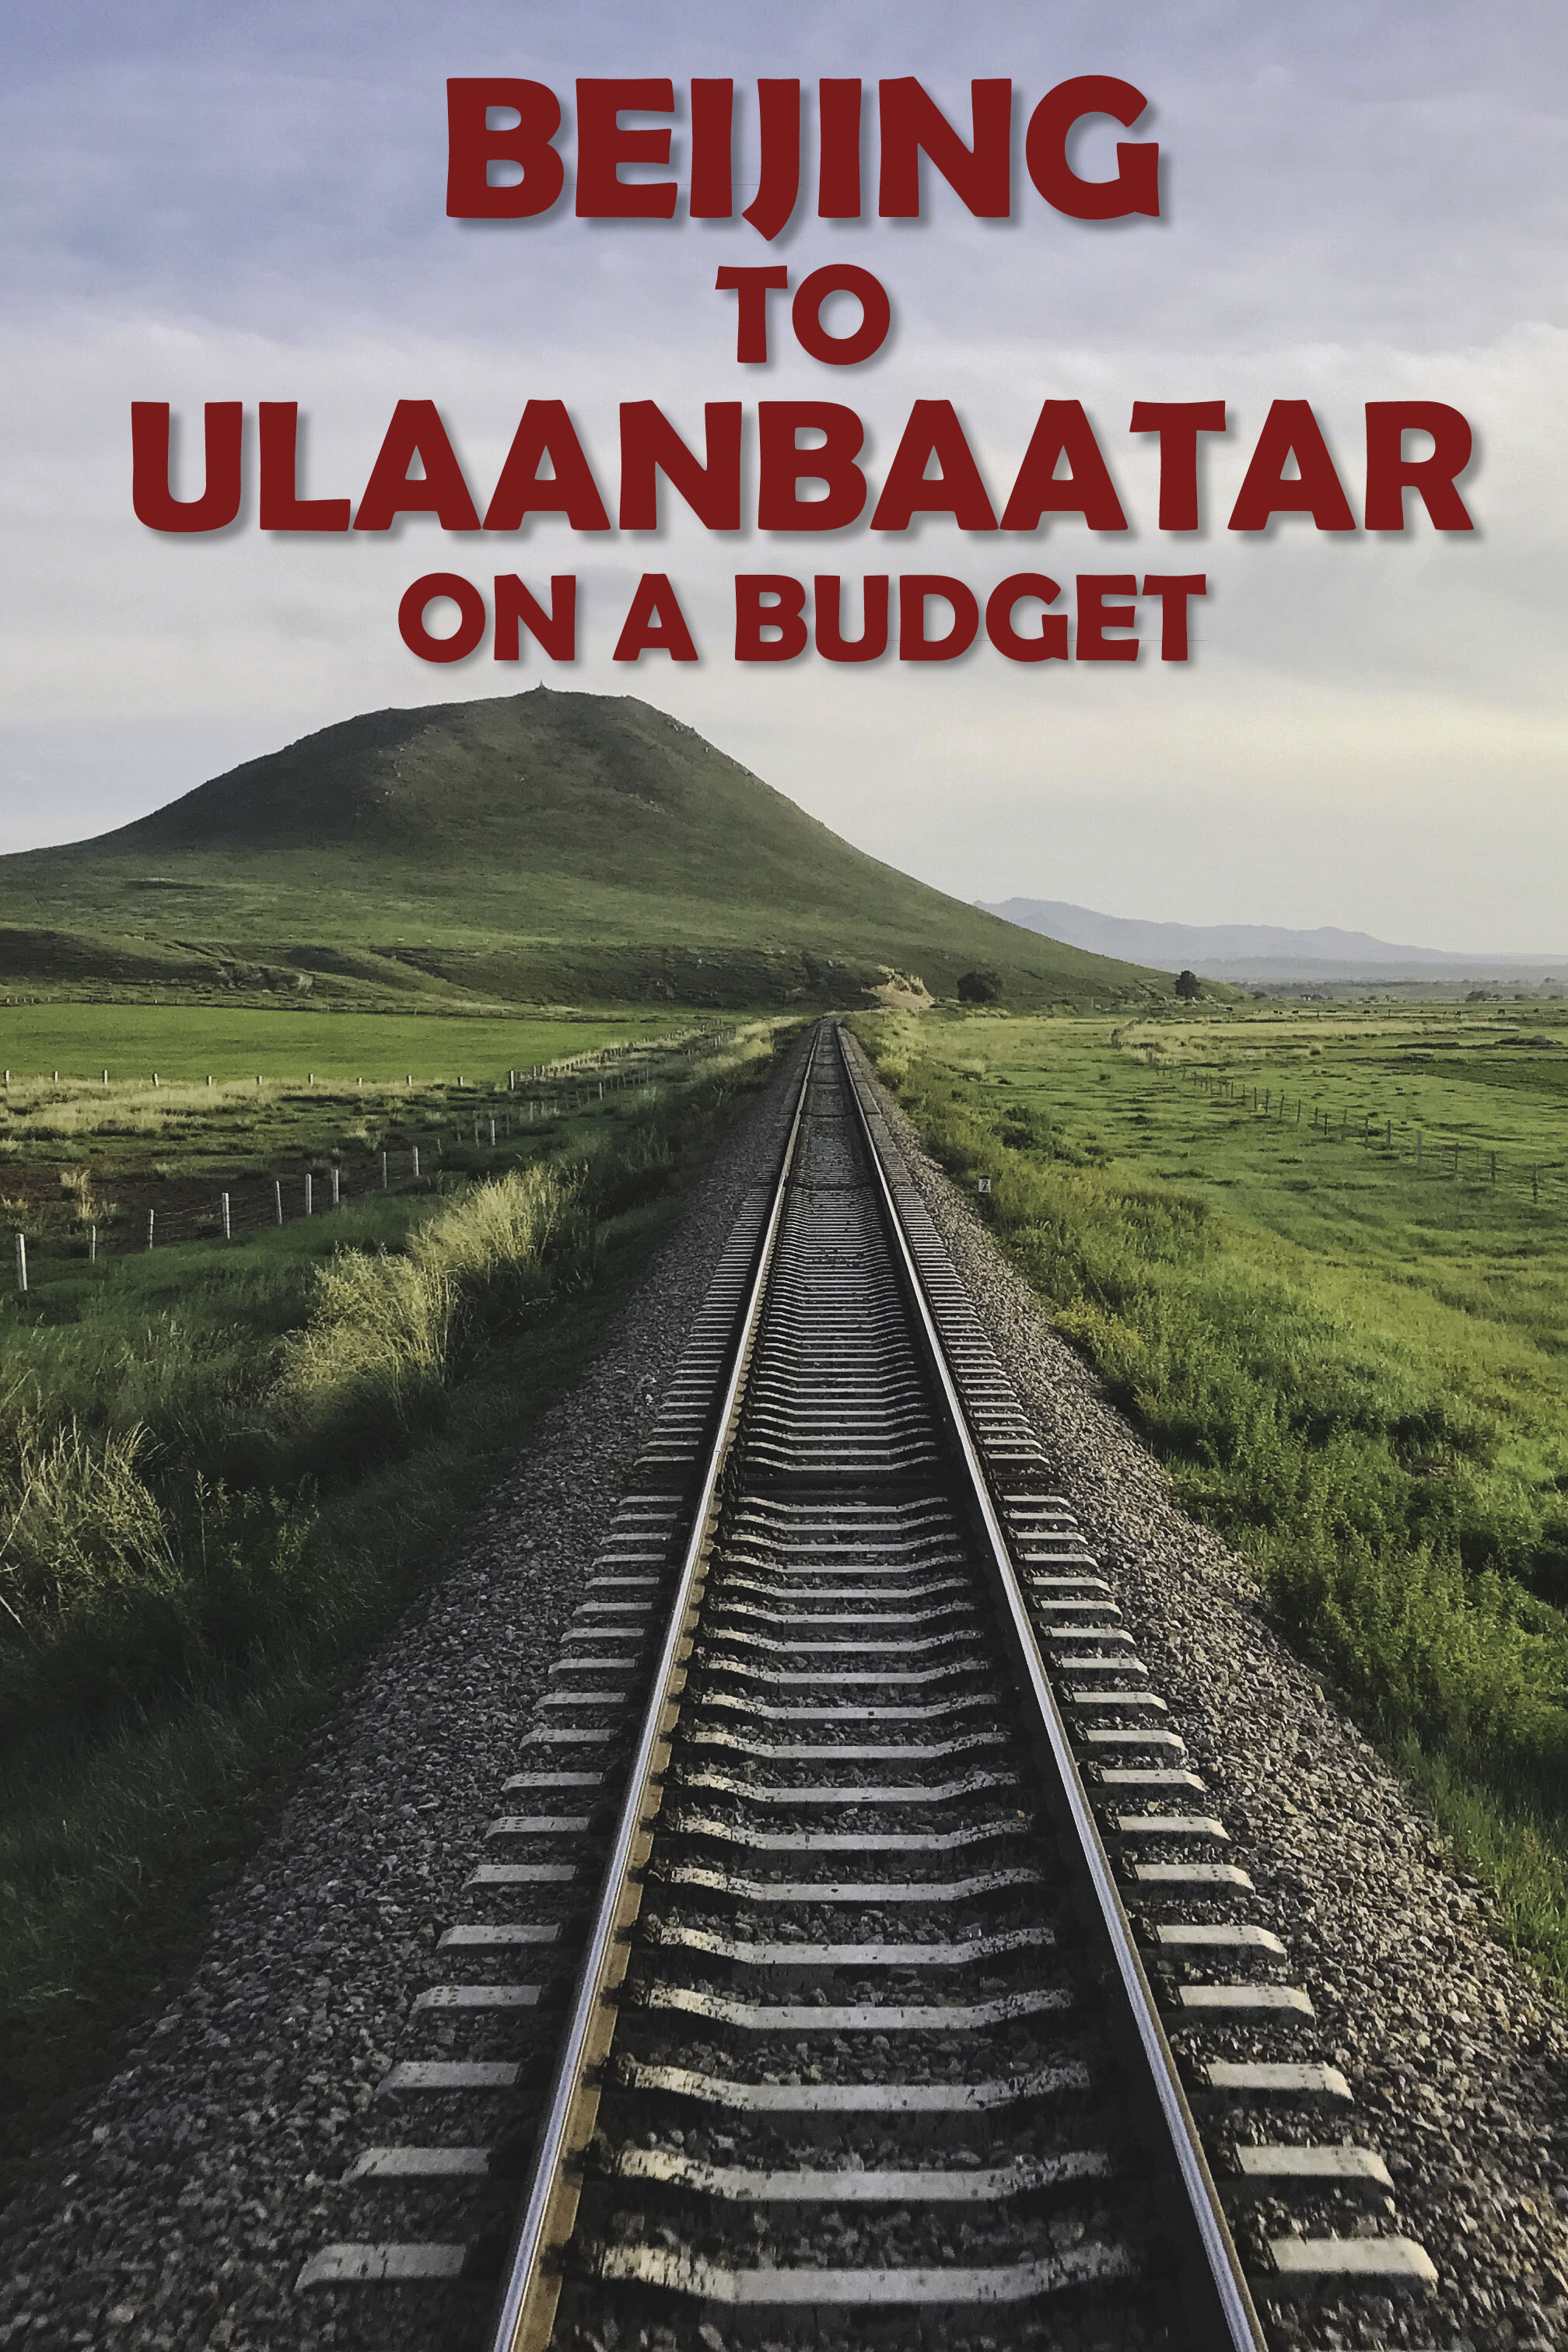 Beijing to Ulaanbaatar on a budget